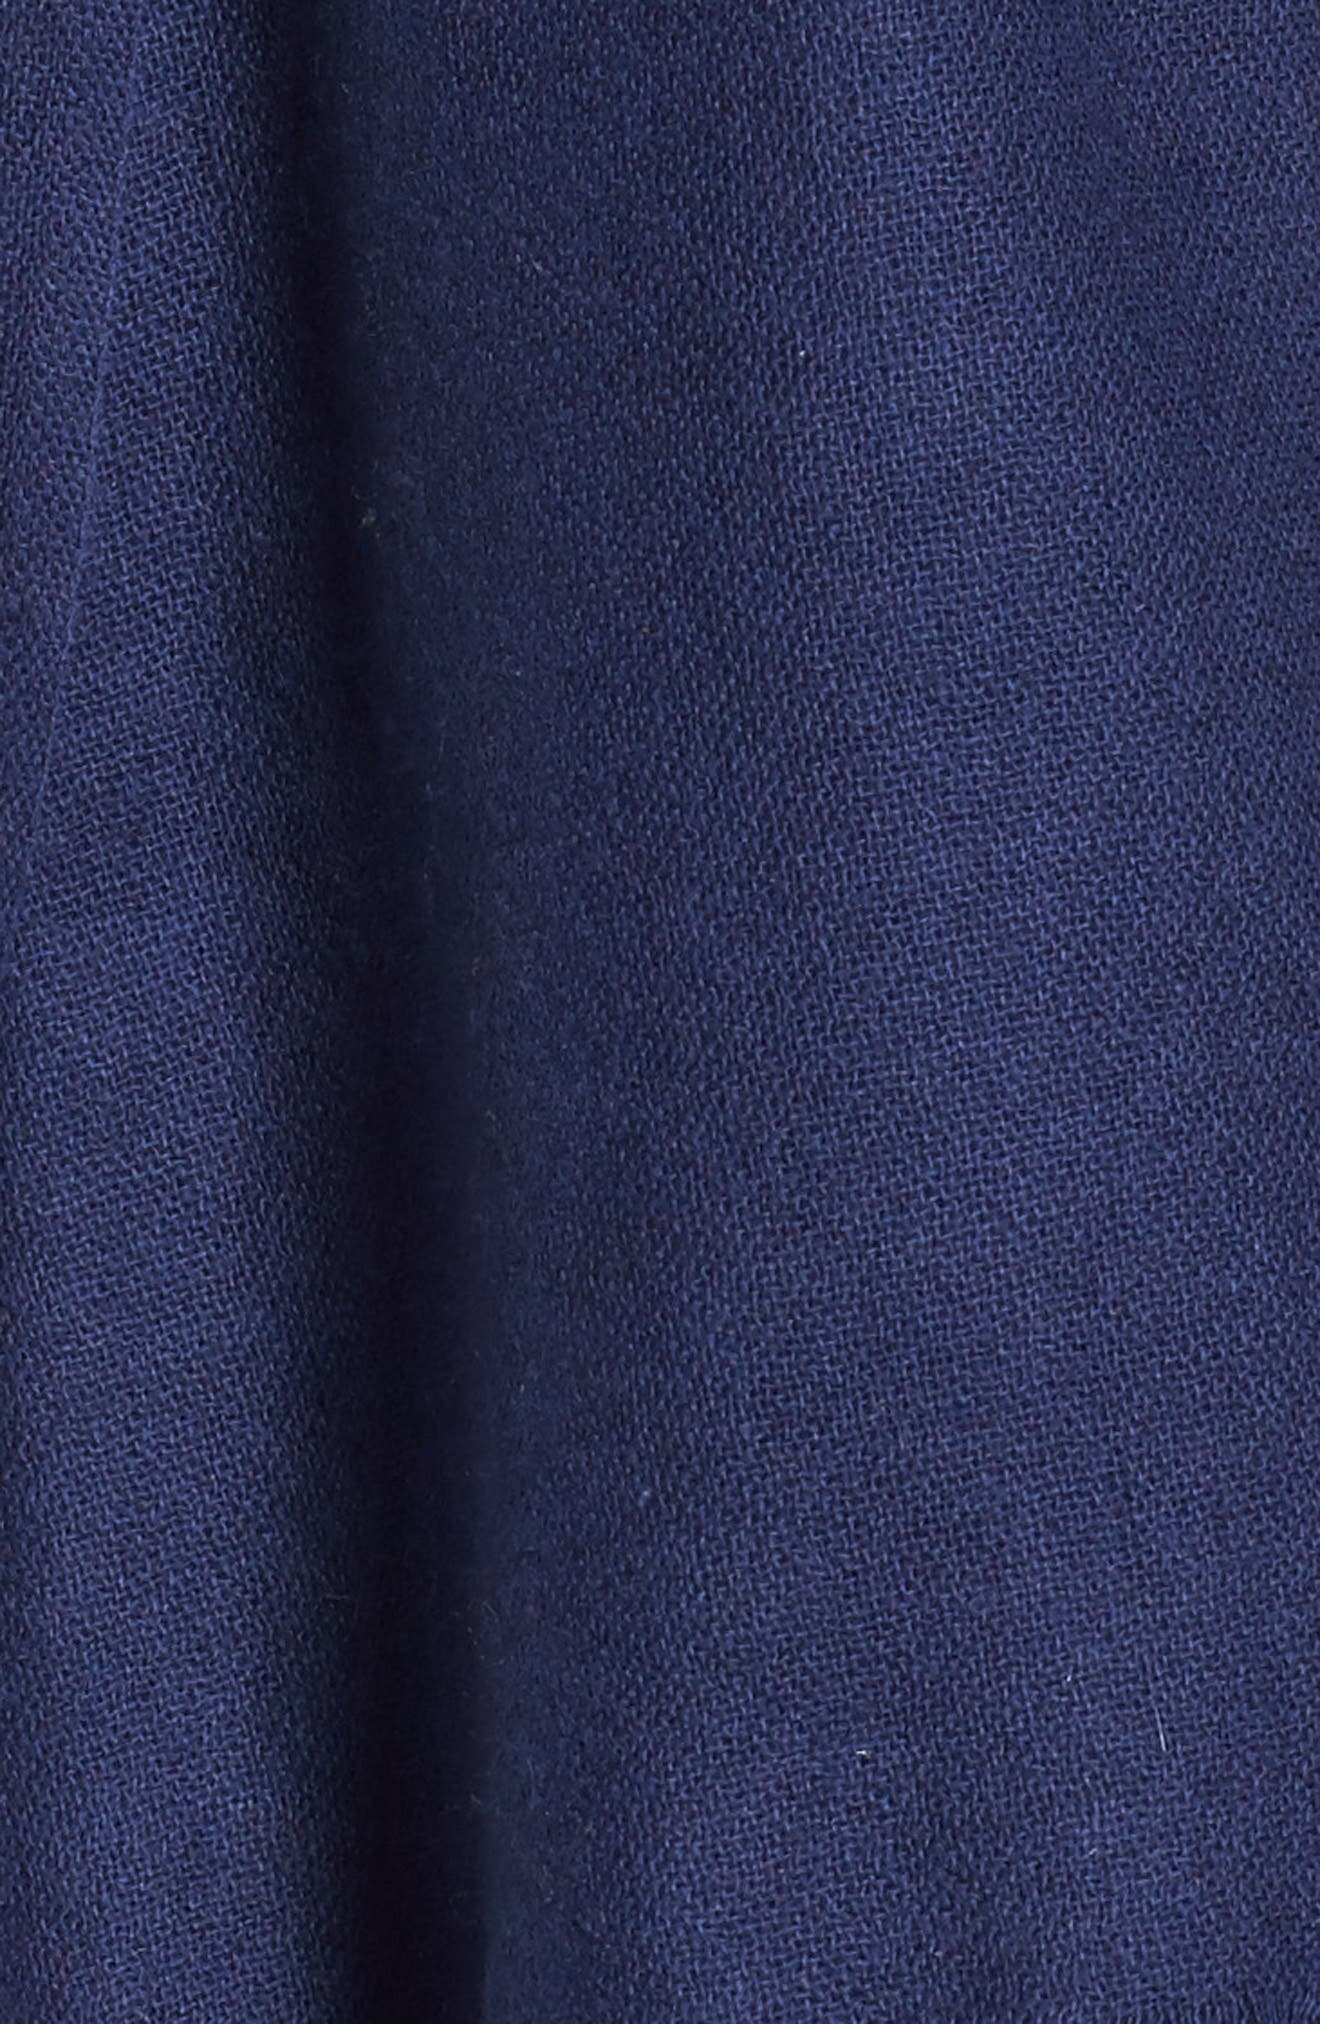 Caslon<sup>®</sup> Heathered Cashmere Gauze Scarf,                             Alternate thumbnail 3, color,                             Navy Peacoat